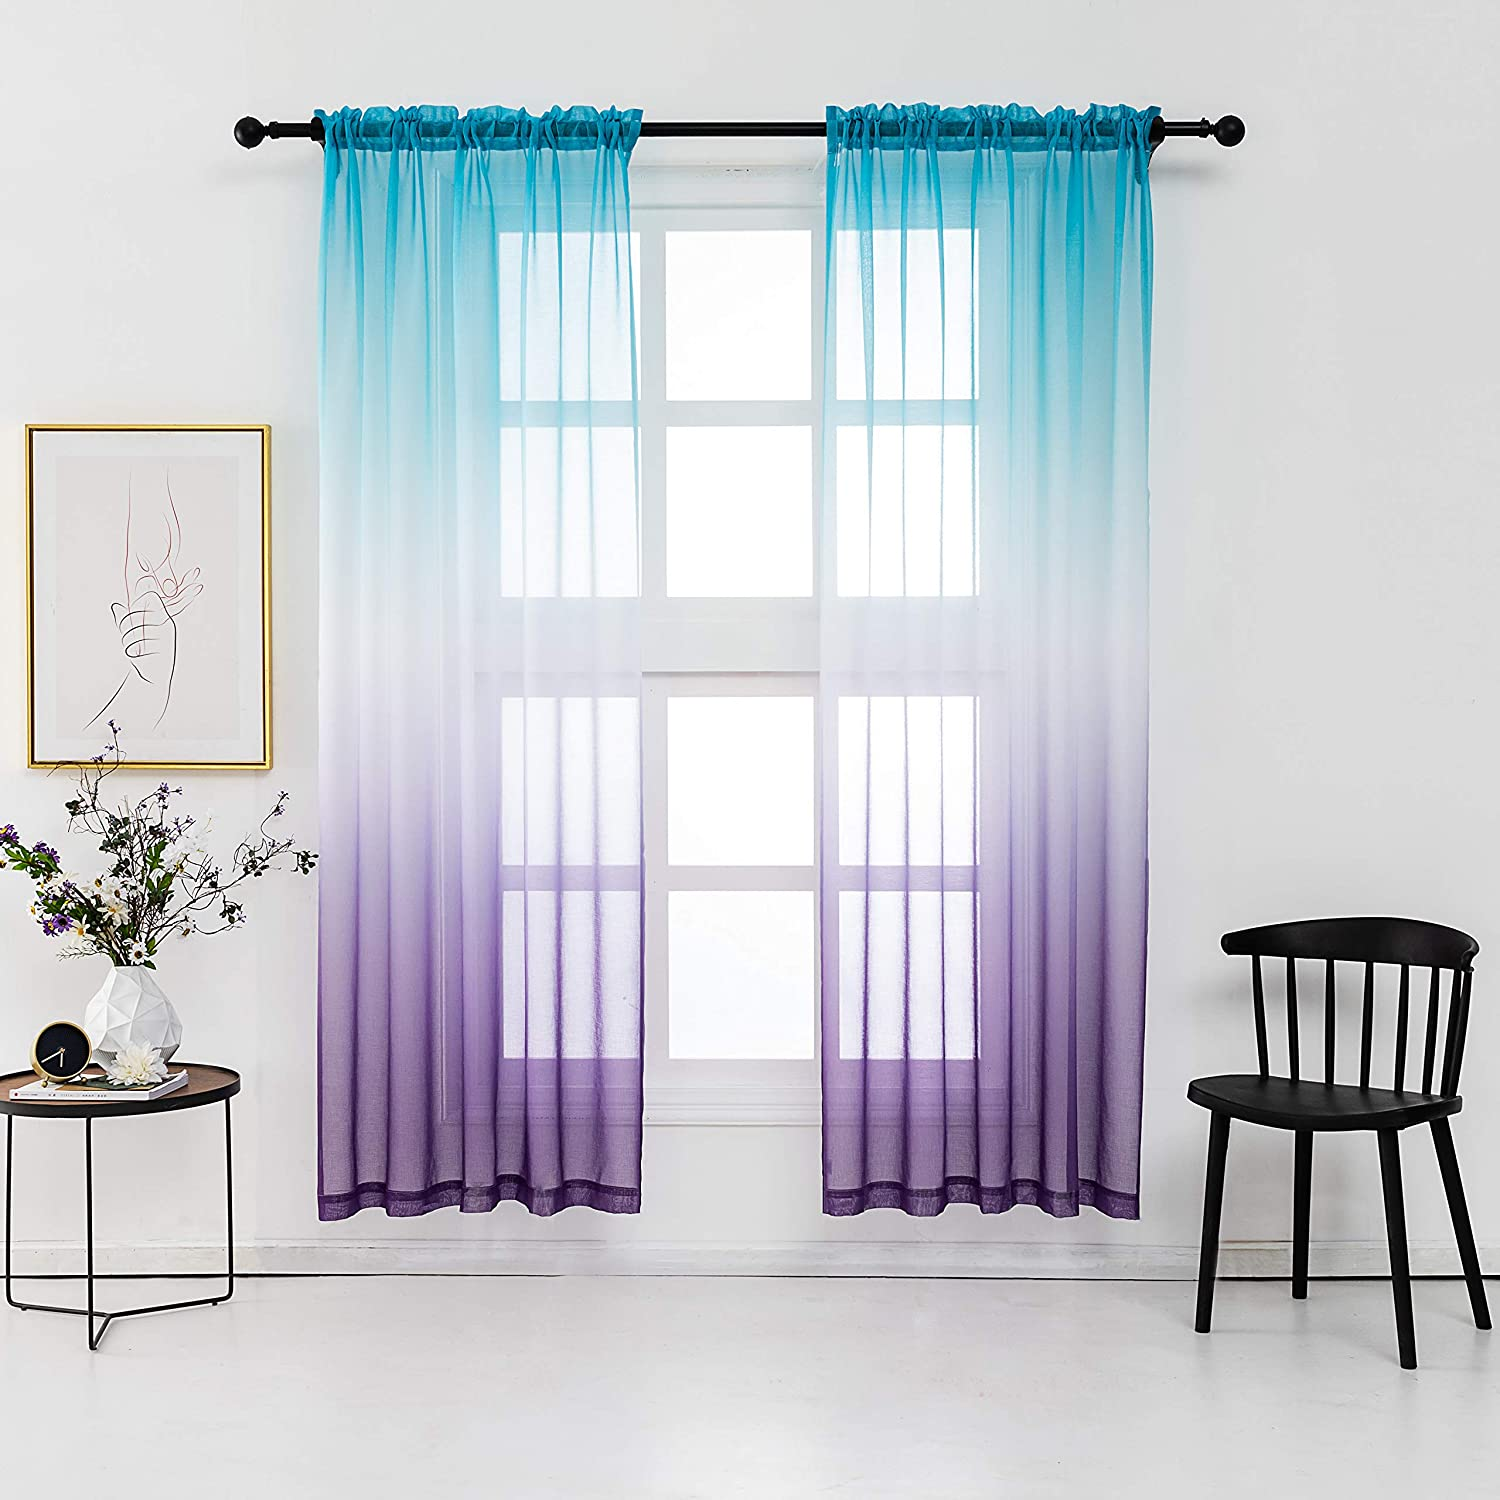 Lilac Turquoise Curtains for Bedroom Girls Room Decor 2 Panels Reversible Ombre Pattern Window Semi Short Sheer Curtains for Girly Nursery Kids Beach Green Purple (52